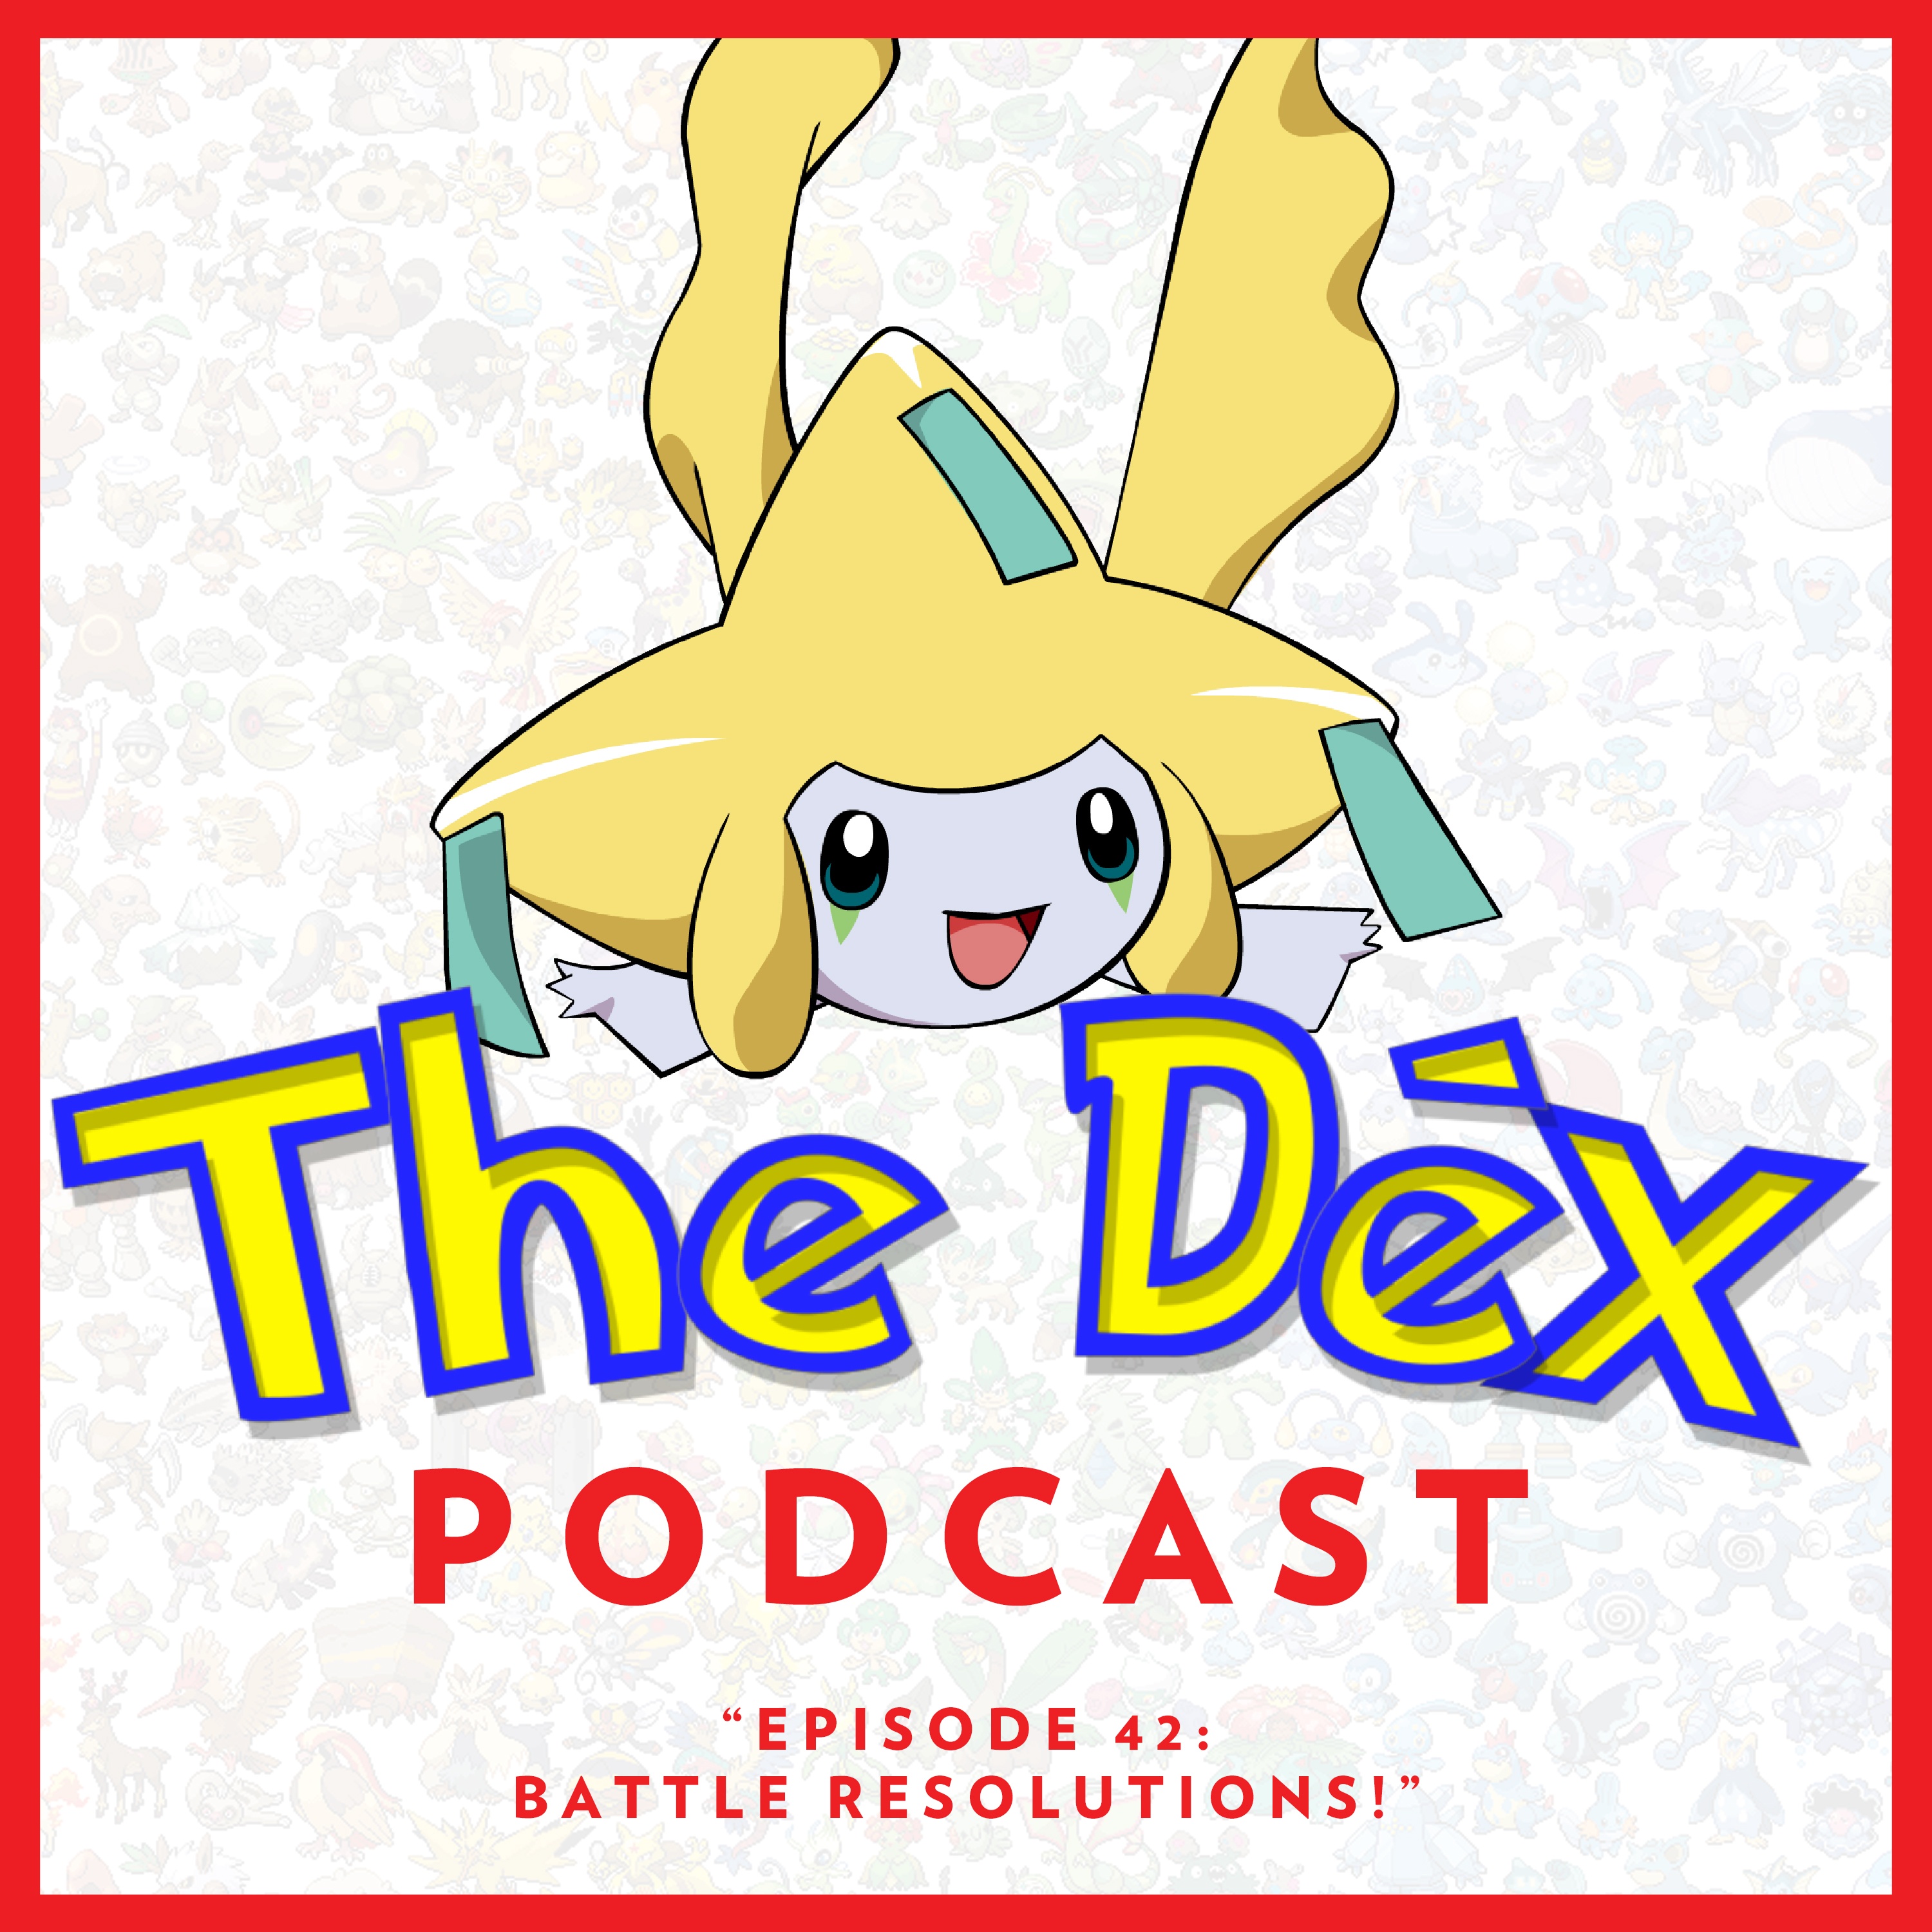 The Dex! Podcast #42: Battle Resolutions!